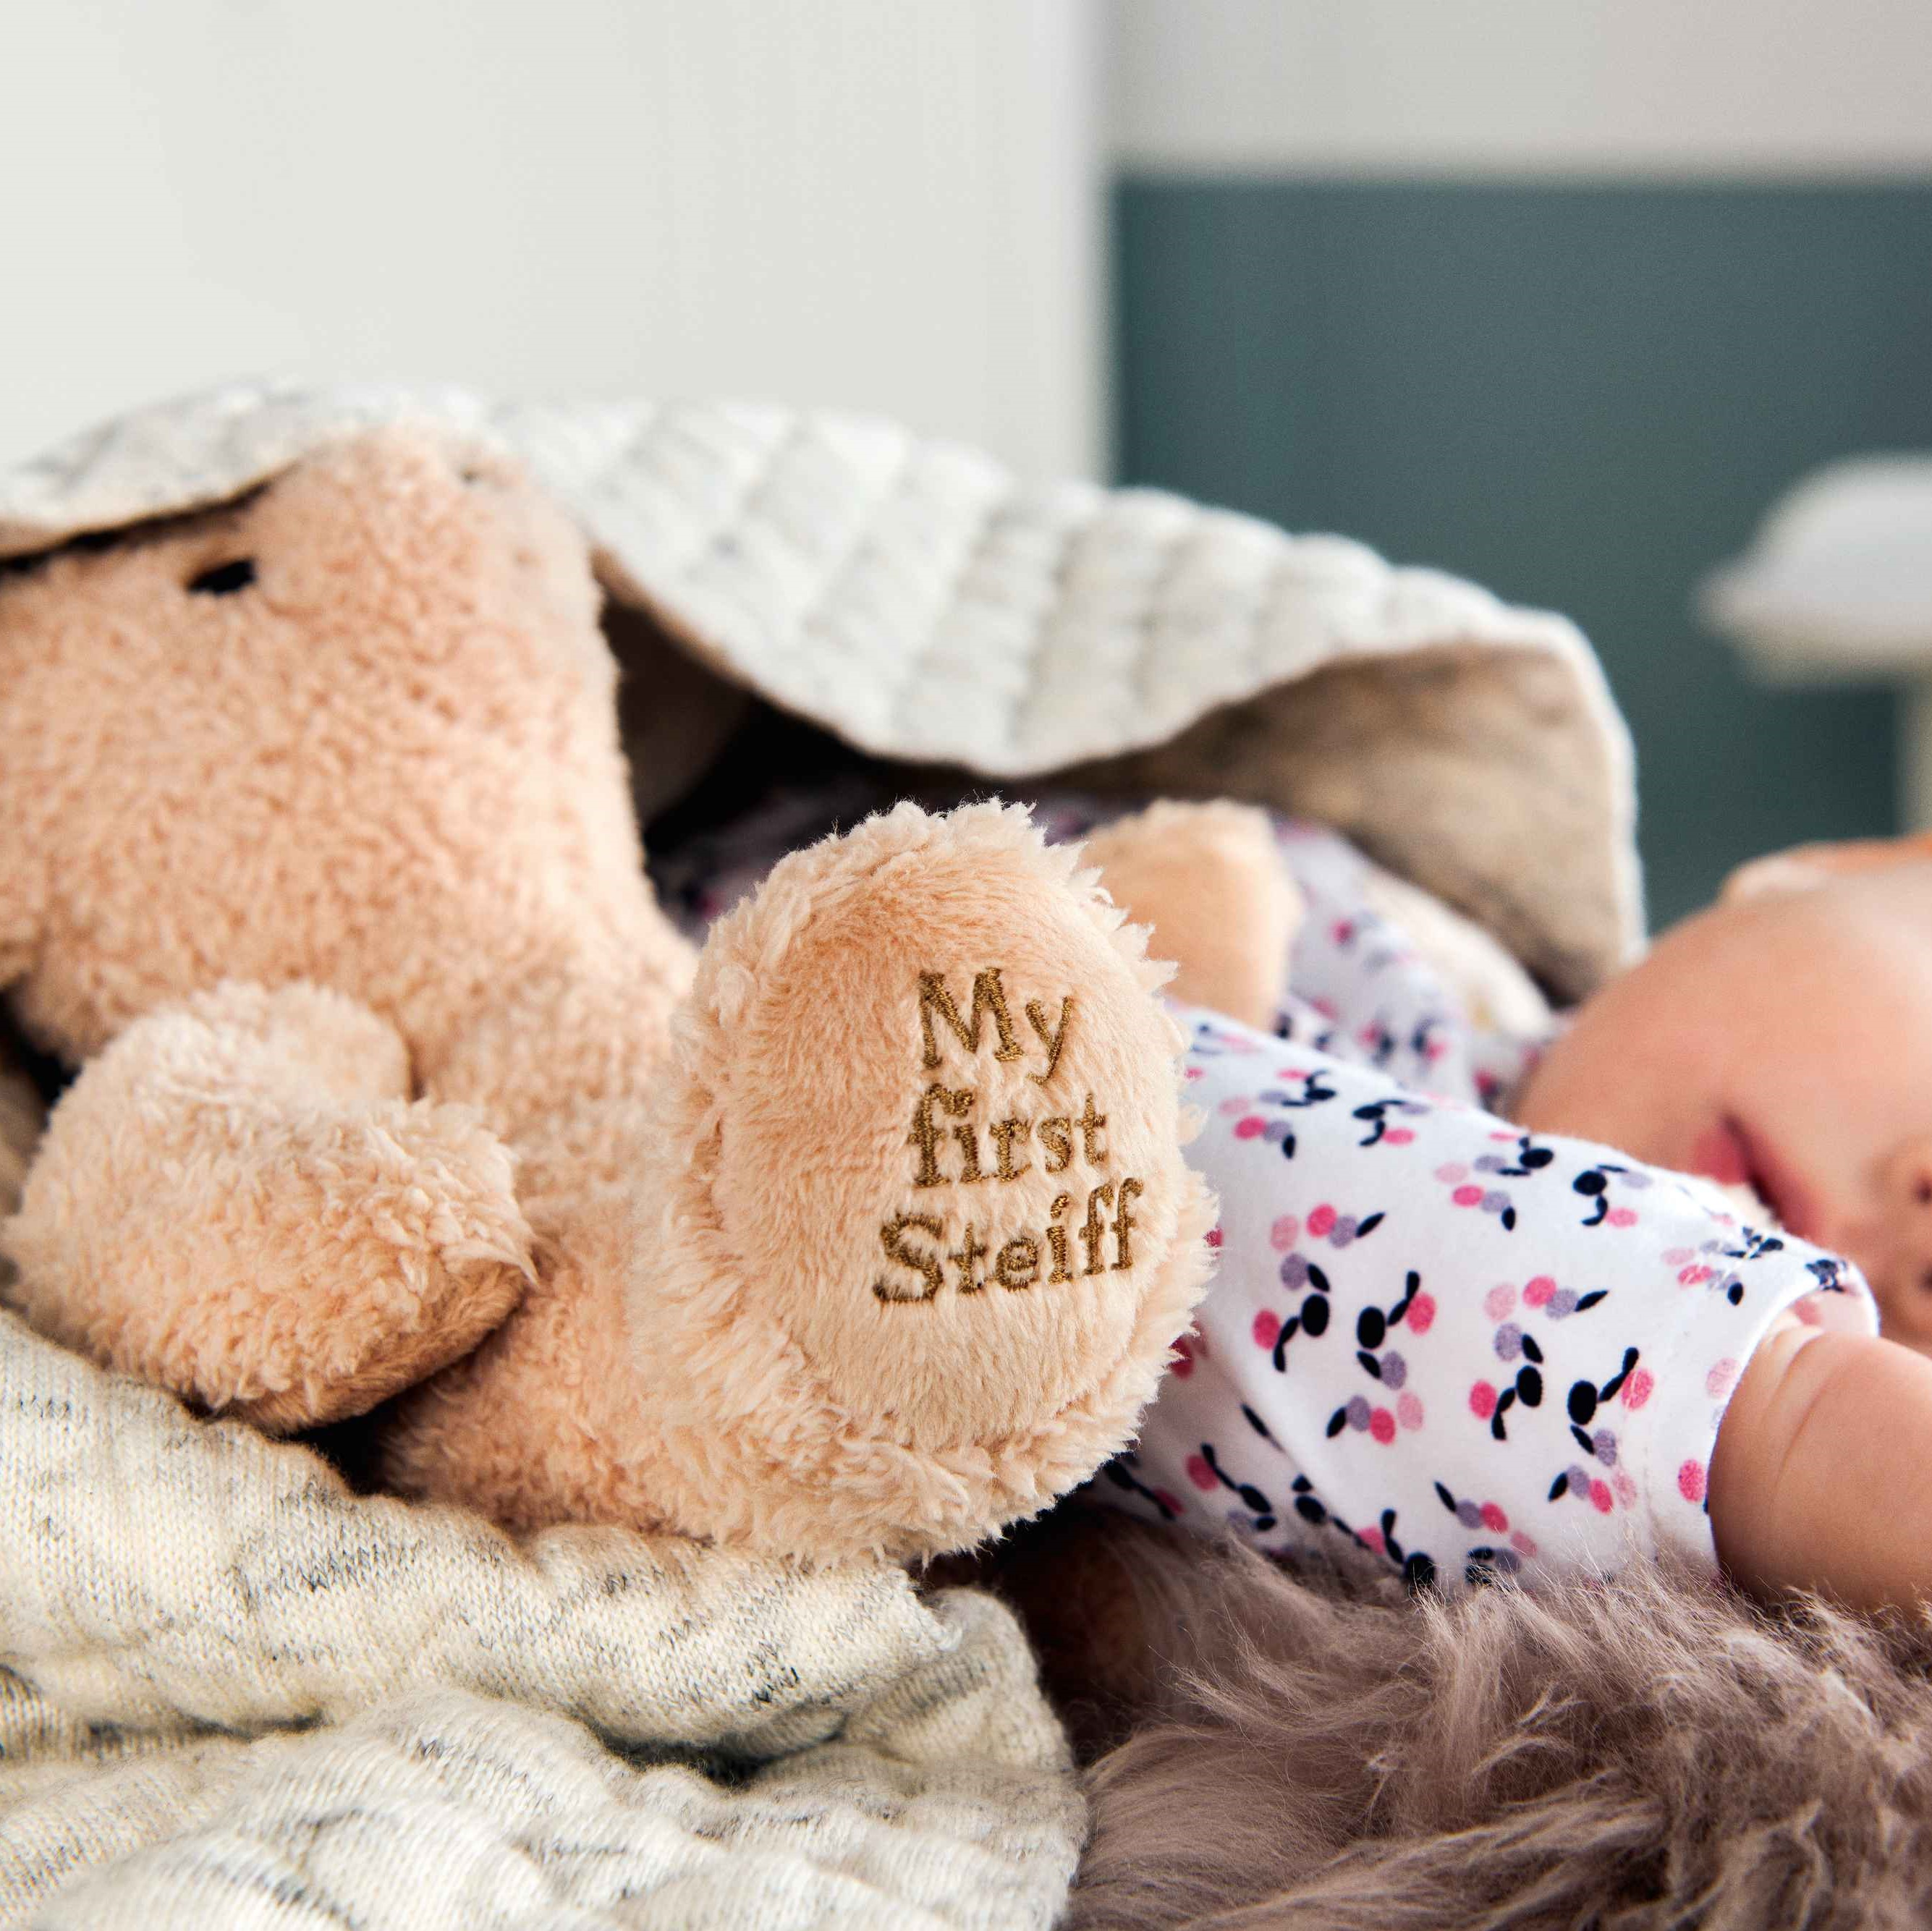 664120-baby-first-steiff-teddy.jpg